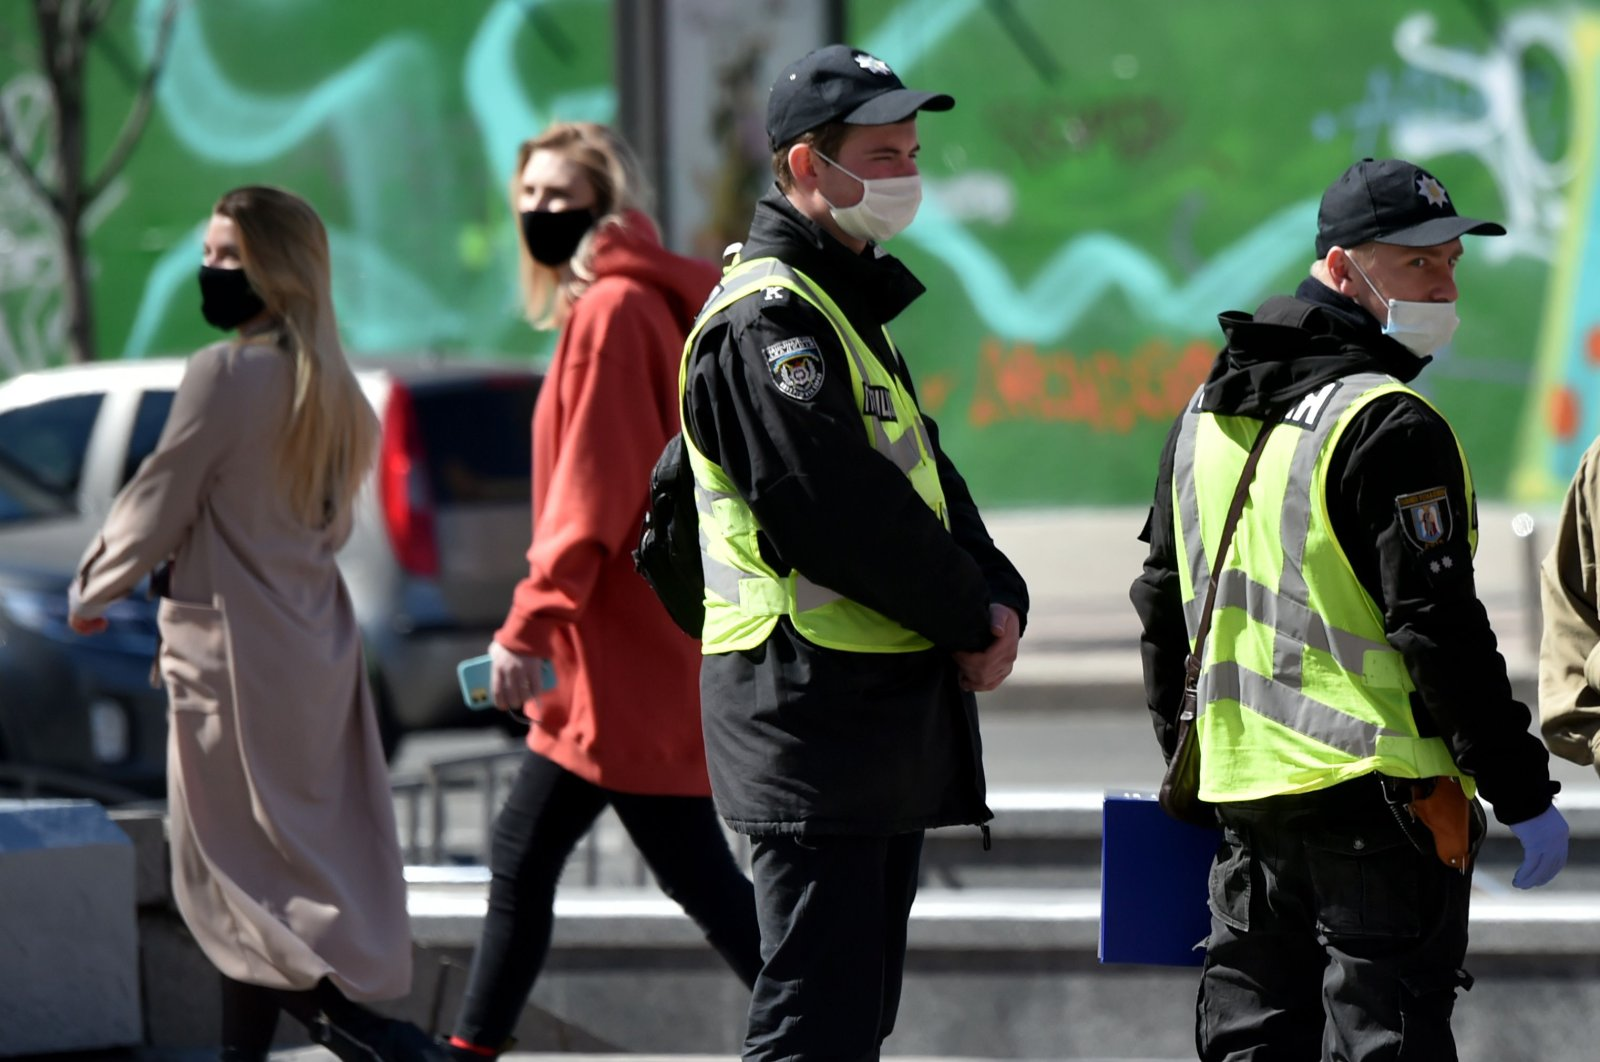 Police officers wearing face masks patrol the streets of Ukrainian capital Kyiv during a lockdown to prevent the spread of COVID-19, Monday, April 6, 2020. (AFP Photo)